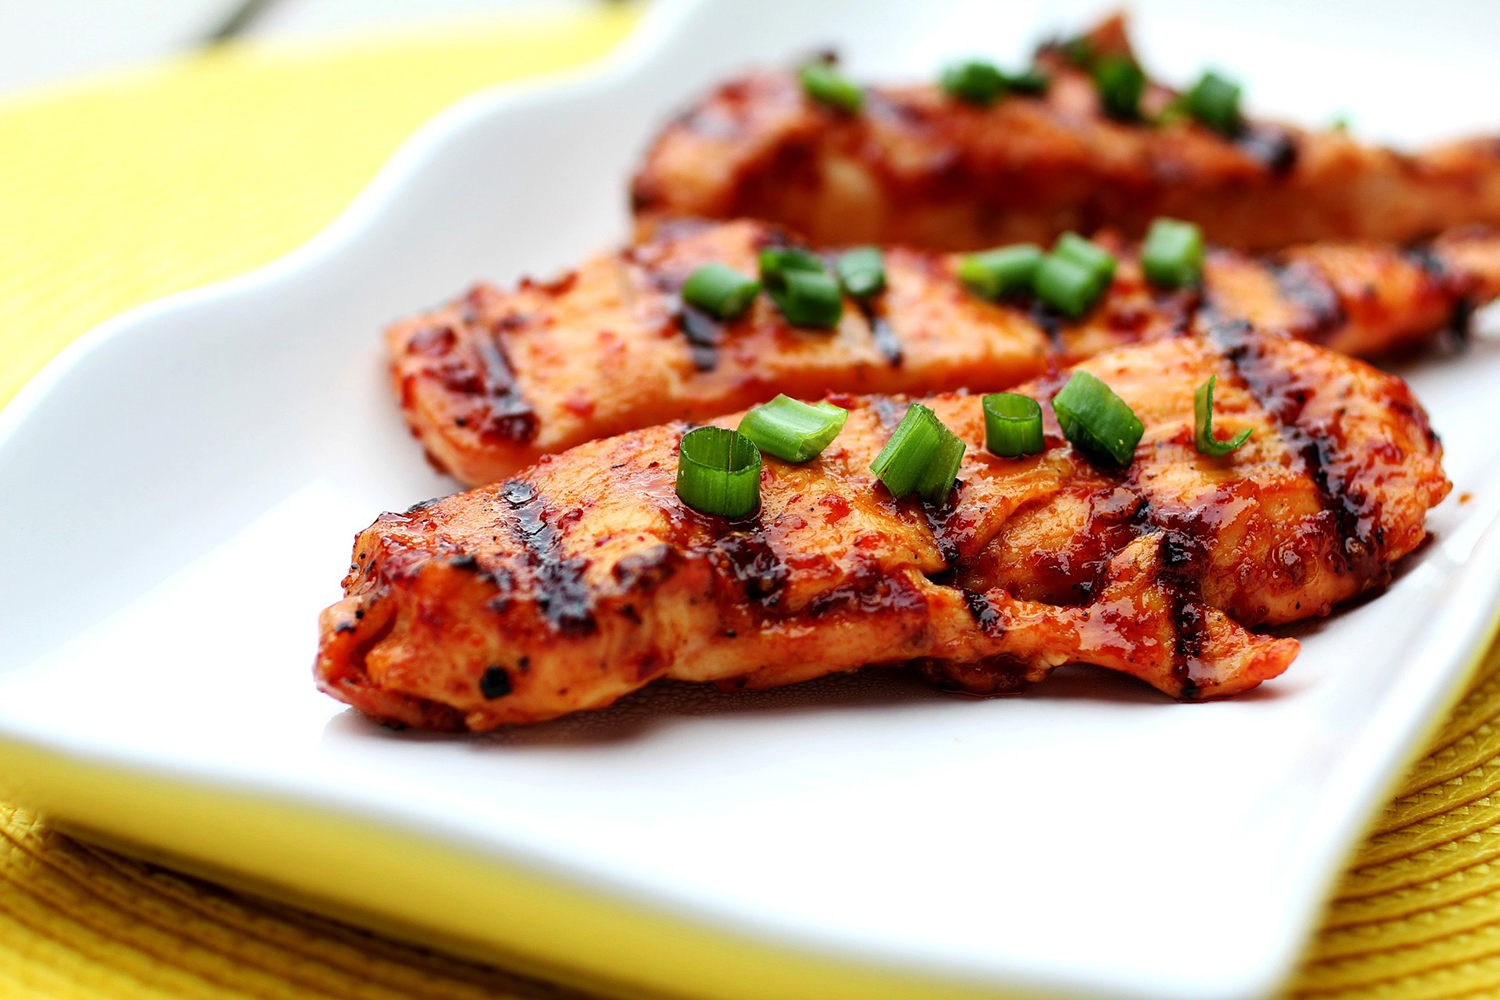 Spicy Grilled Chicken On A Plate